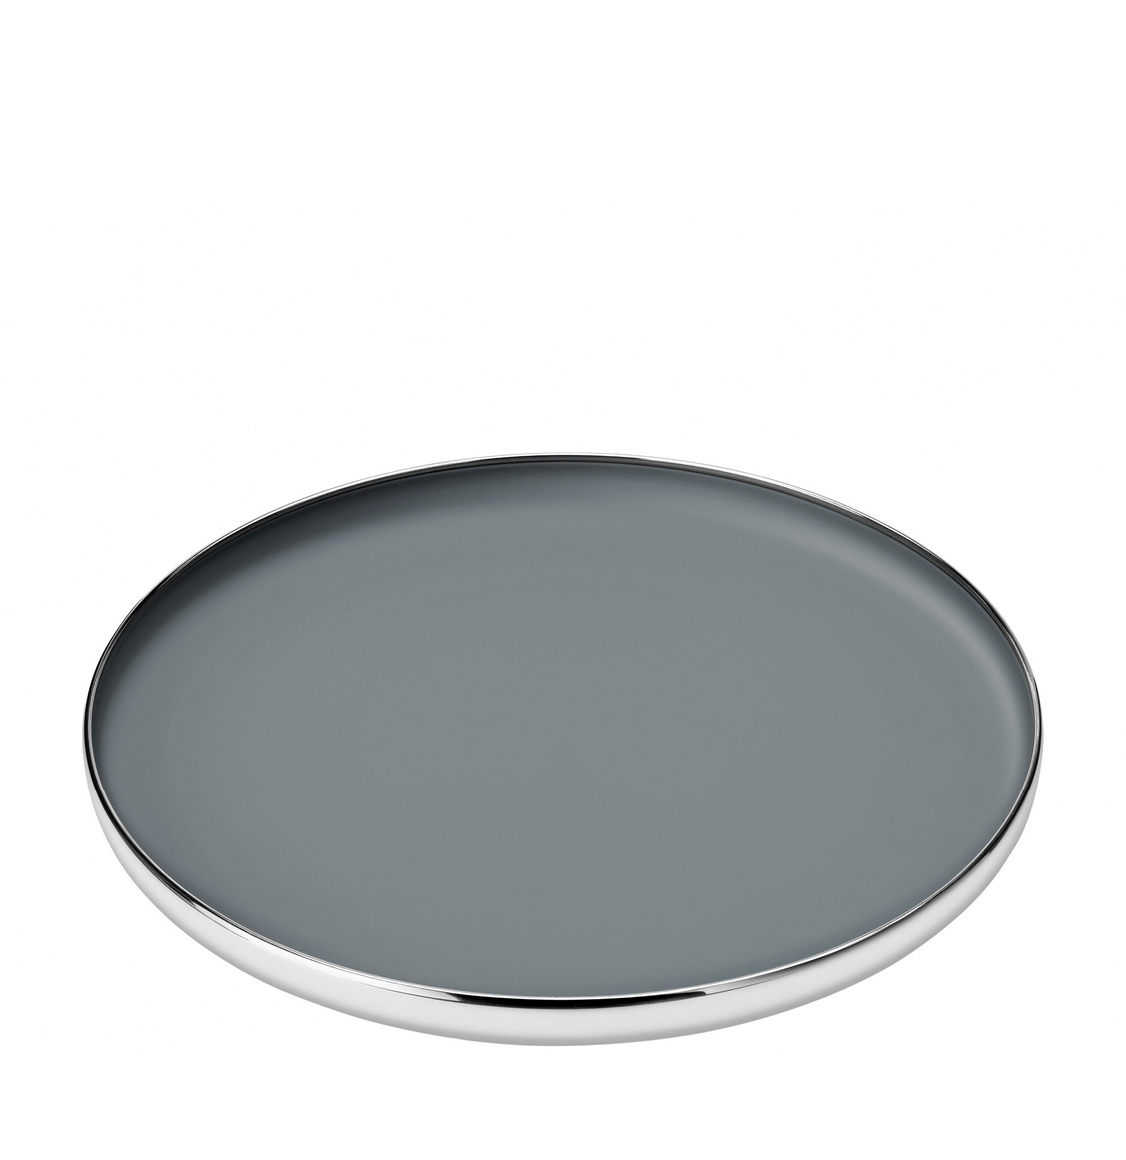 Norman Foster X Stelton Stainless Steel Foster Serving Tray